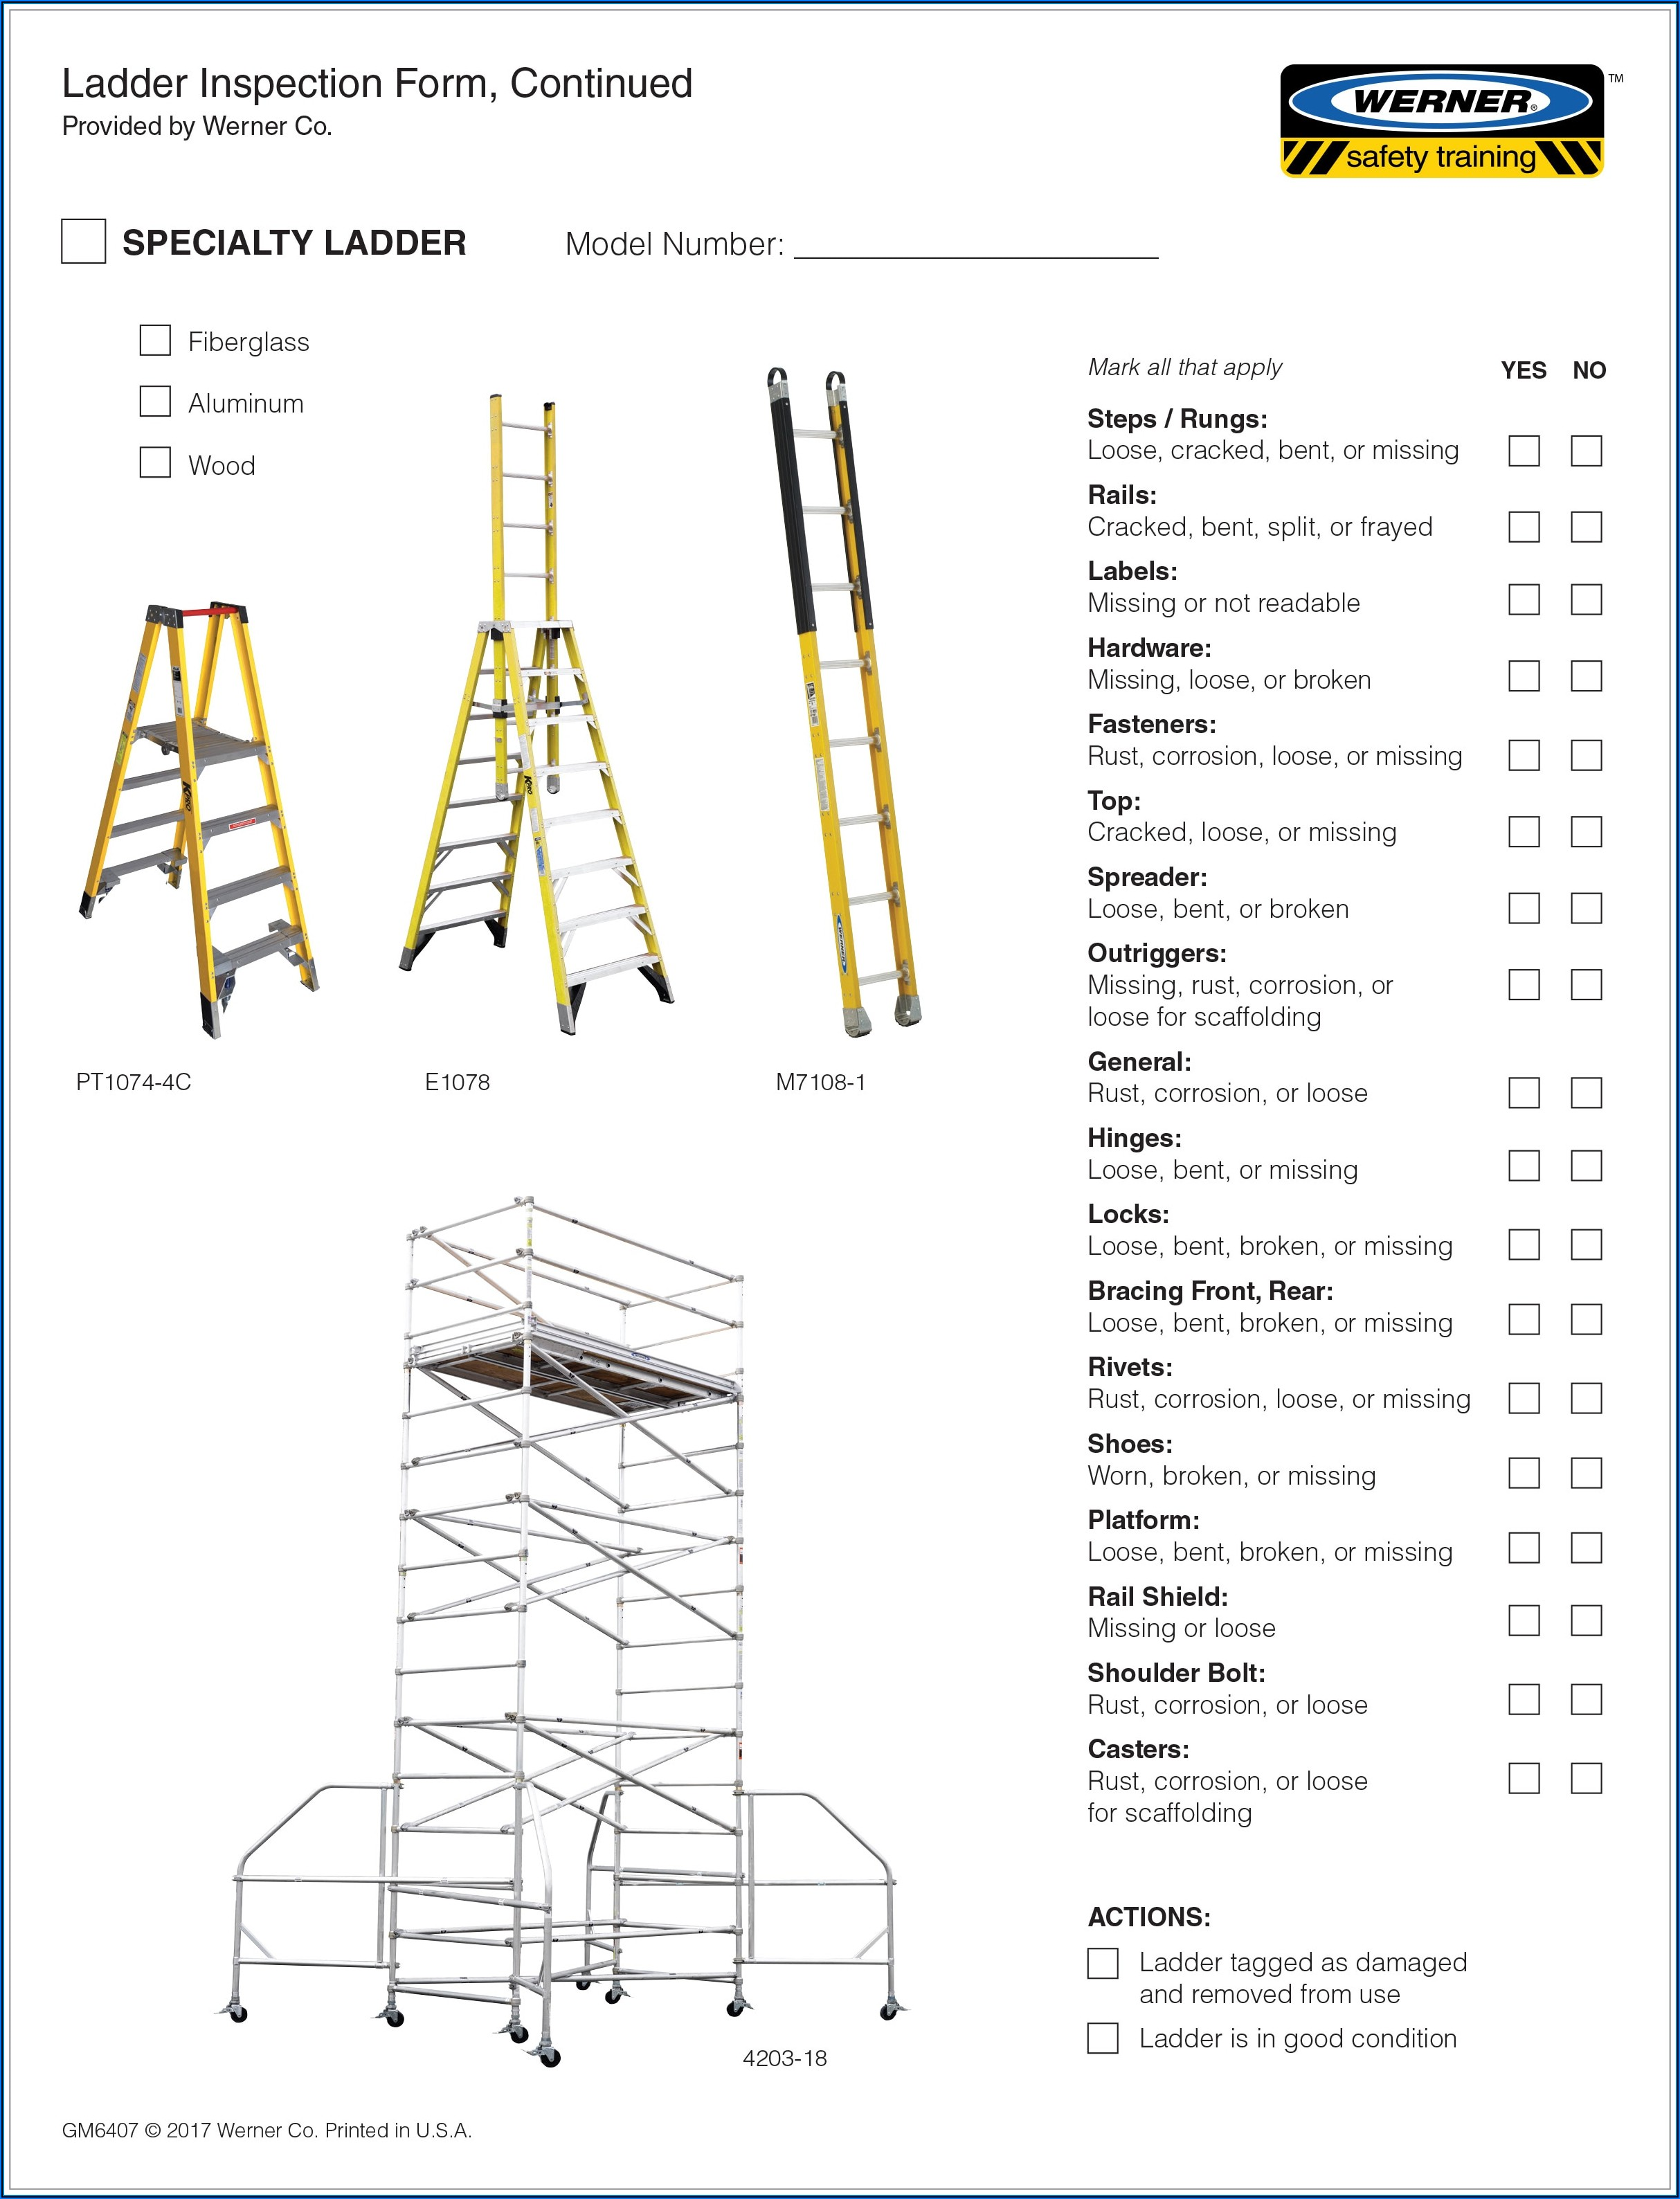 Werner Ladder Inspection Forms